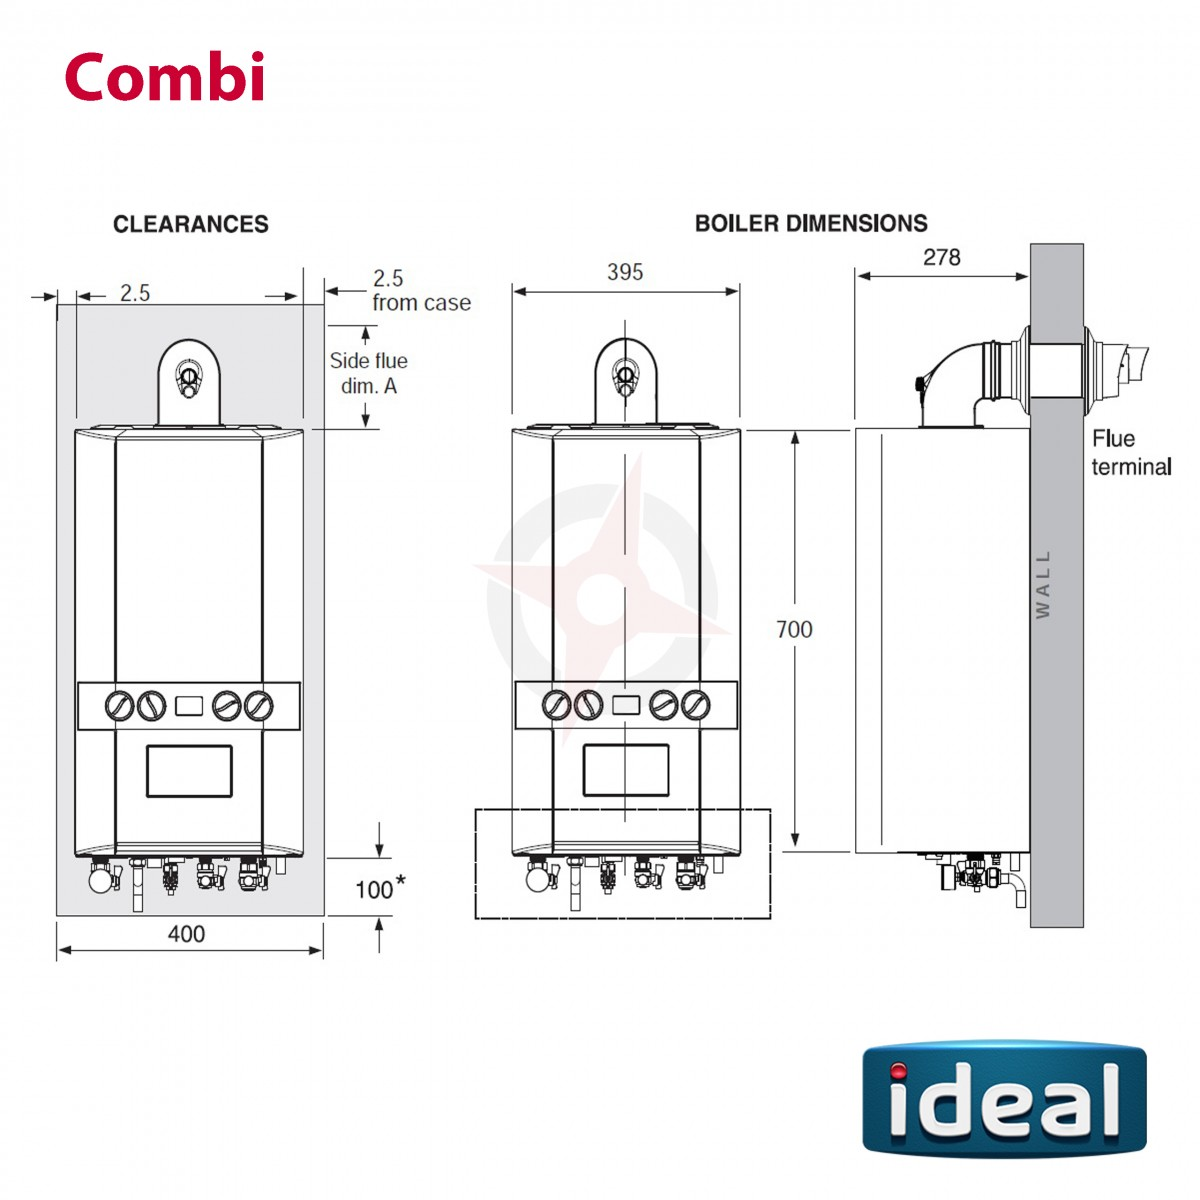 Ideal Logic Combi 24 Boiler Compass Plumbing Amp Heating